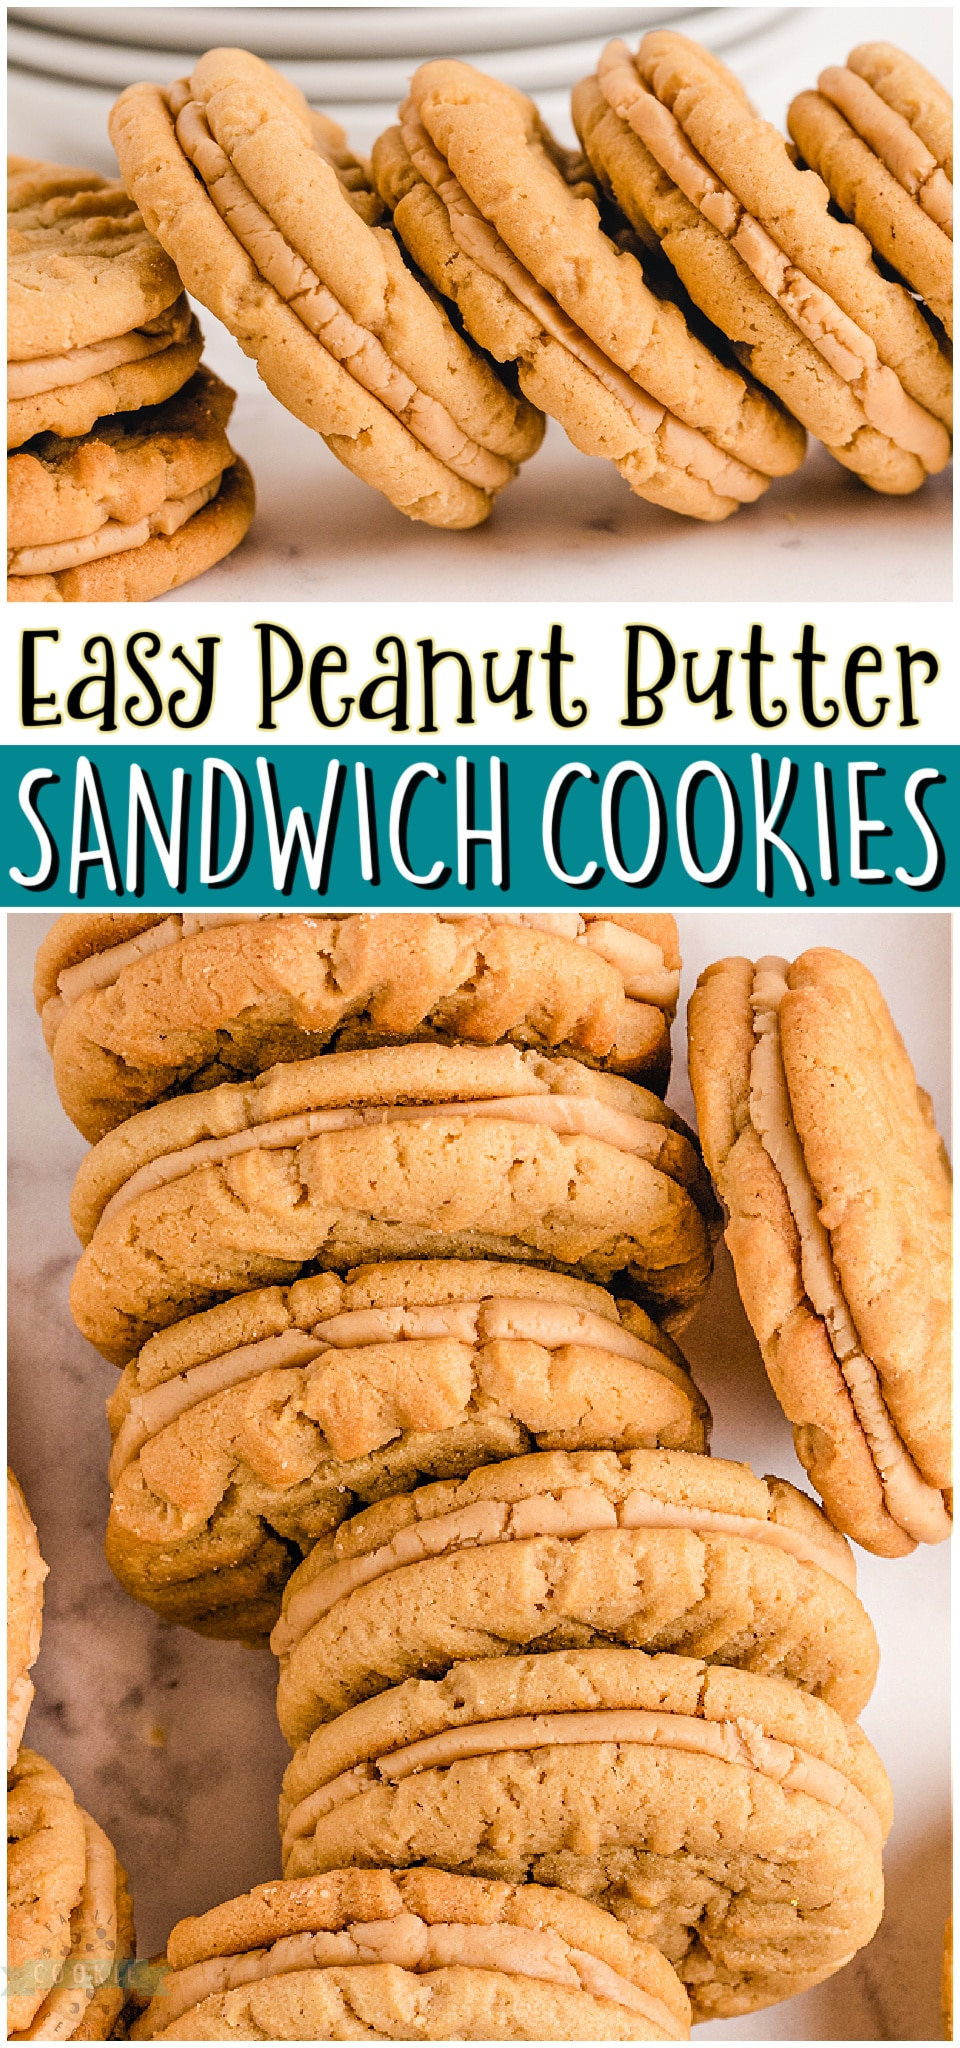 Peanut Butter Sandwich Cookies made with chewy peanut butter cookies & a creamy peanut butter filling. Peanut Butter lovers rejoice! We're sharing our homemade peanut butter cookie sandwiches that everyone goes crazy over!